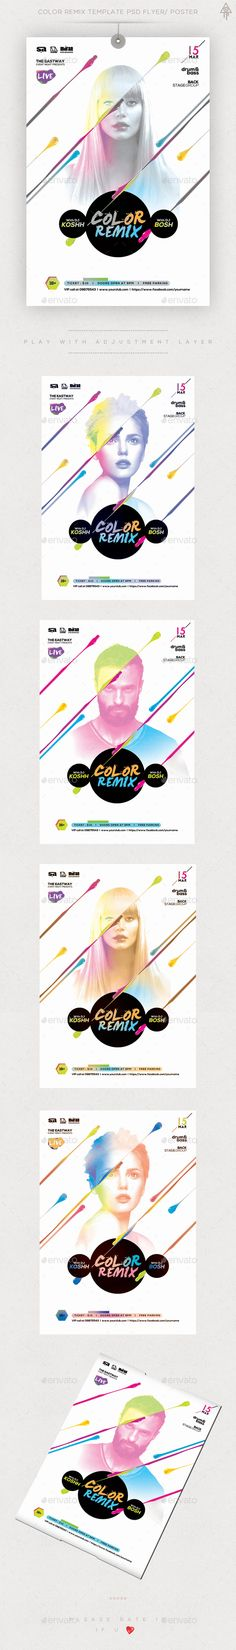 Color Remix Guest Dj Flyer Template PSD Poster/ Flyer Banner Design, Flyer Design, Music Flyer, Layout, Party Poster, Creative Posters, Party Flyer, Design Reference, Magazine Design